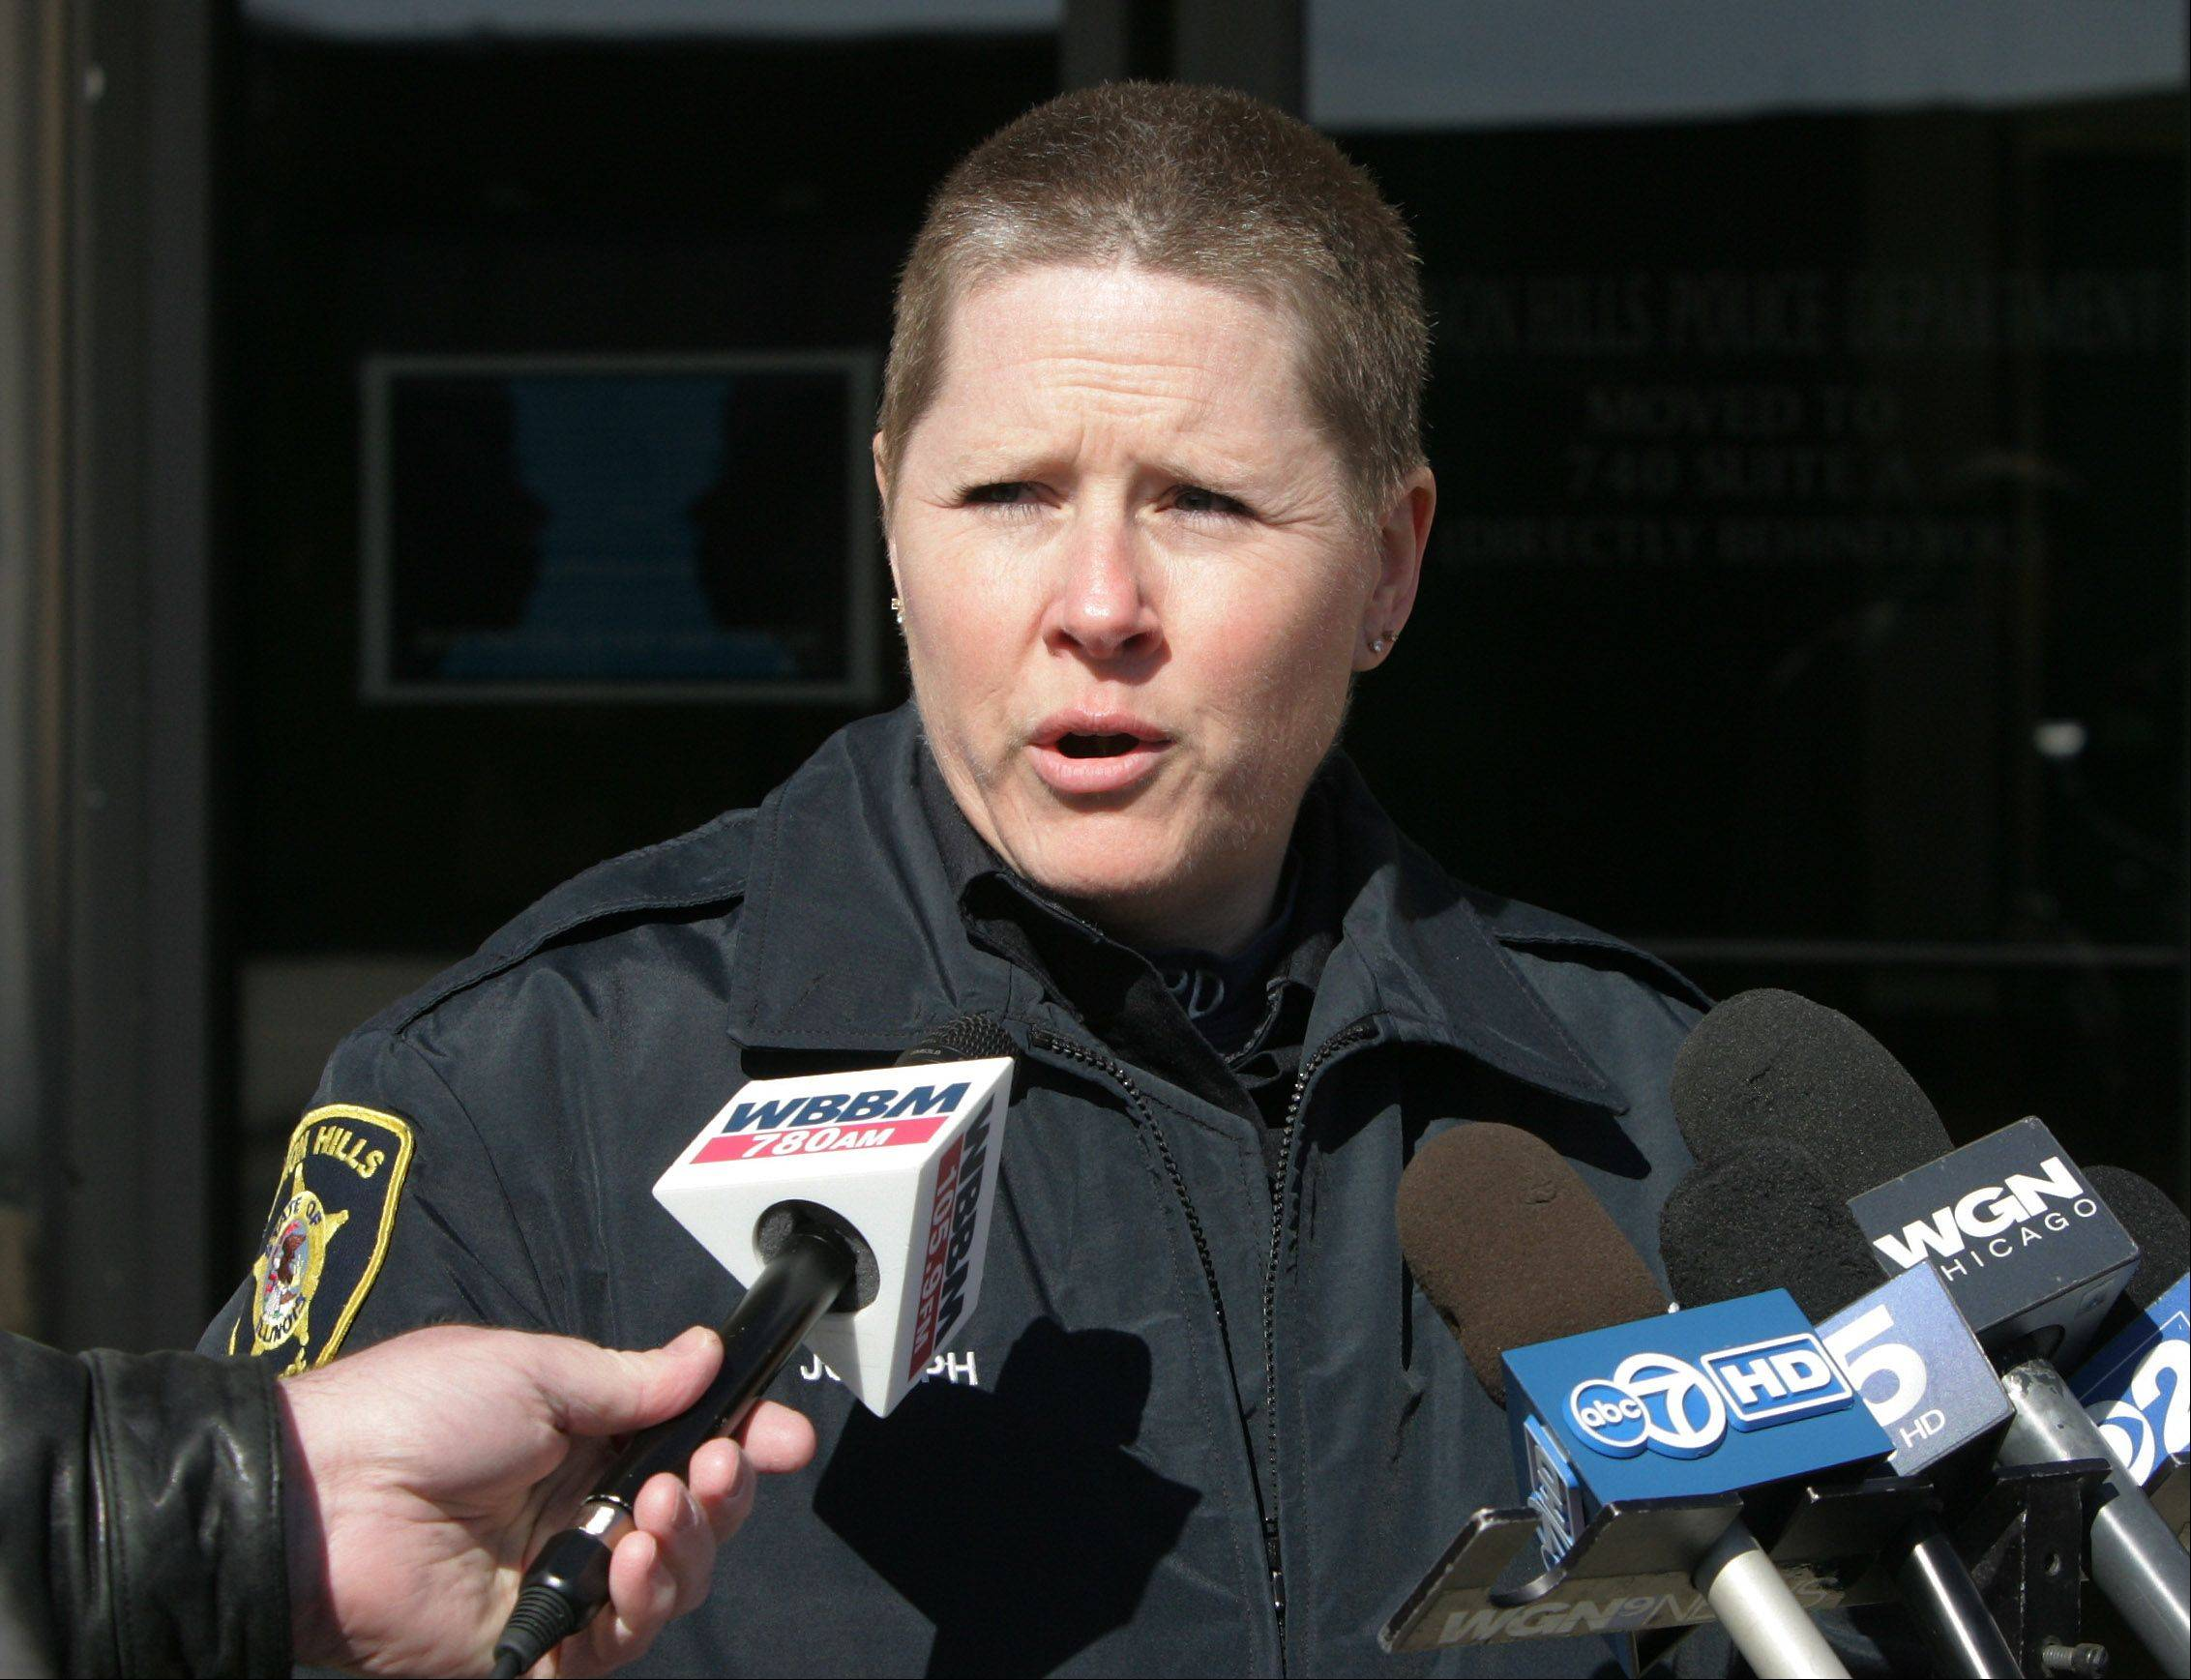 Vernon Hills Police Department spokeswoman Sharon Joseph describes the events that led to a police shooting at the station. Howard R. Lazarus, of Mundelein, walked into the station and pulled a replica gun on an officer. The officer fired two shots at Lazarus, wounding him.